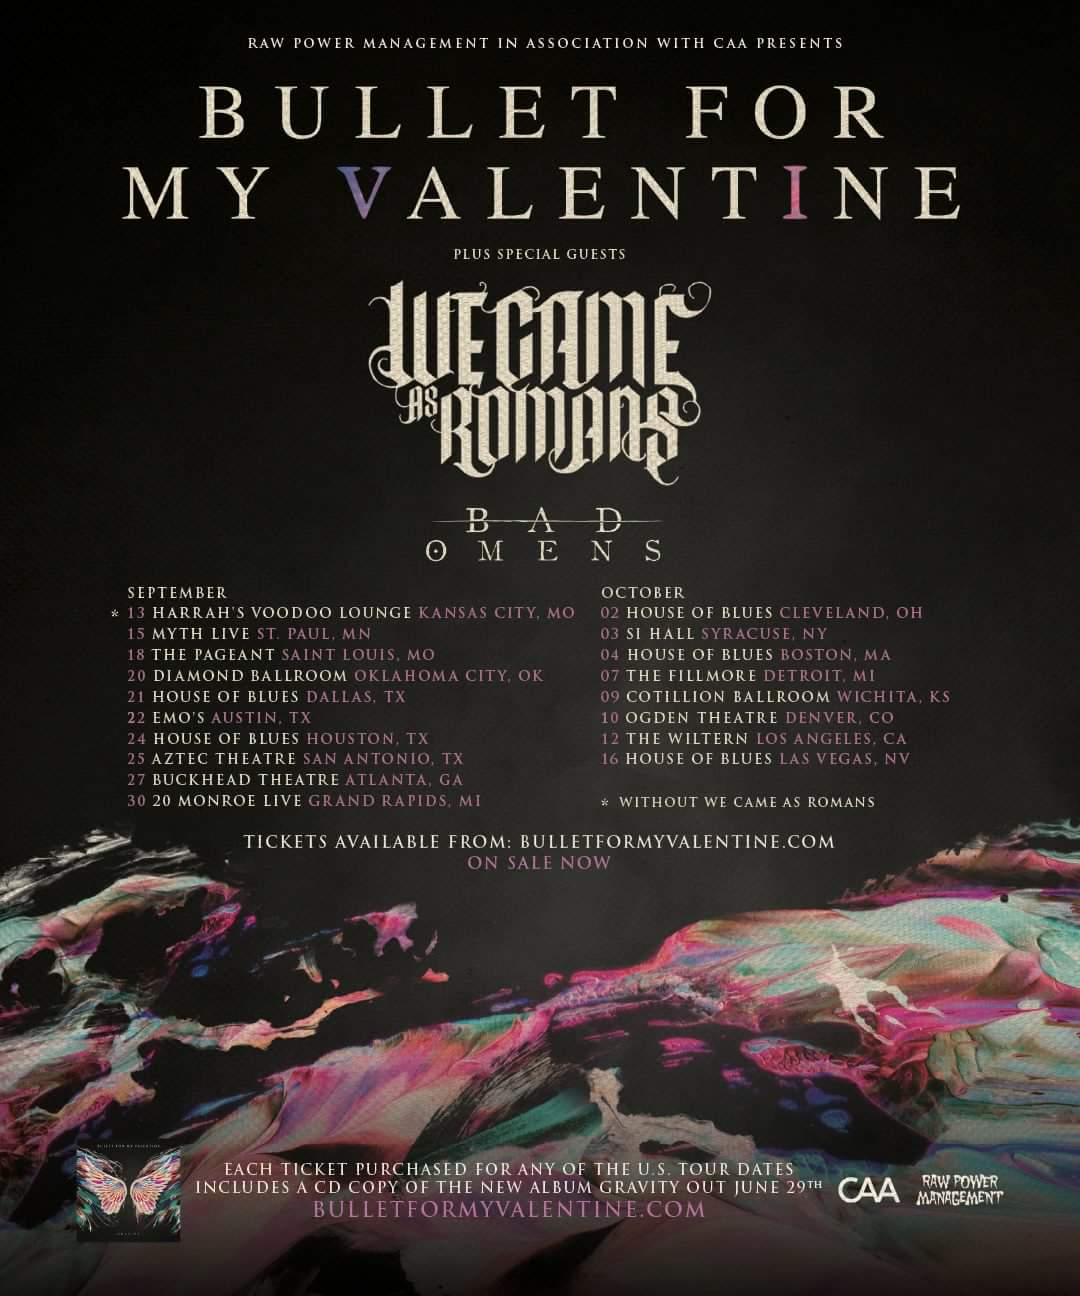 We Came As Romans & Bad Omens Added To Bullet For My